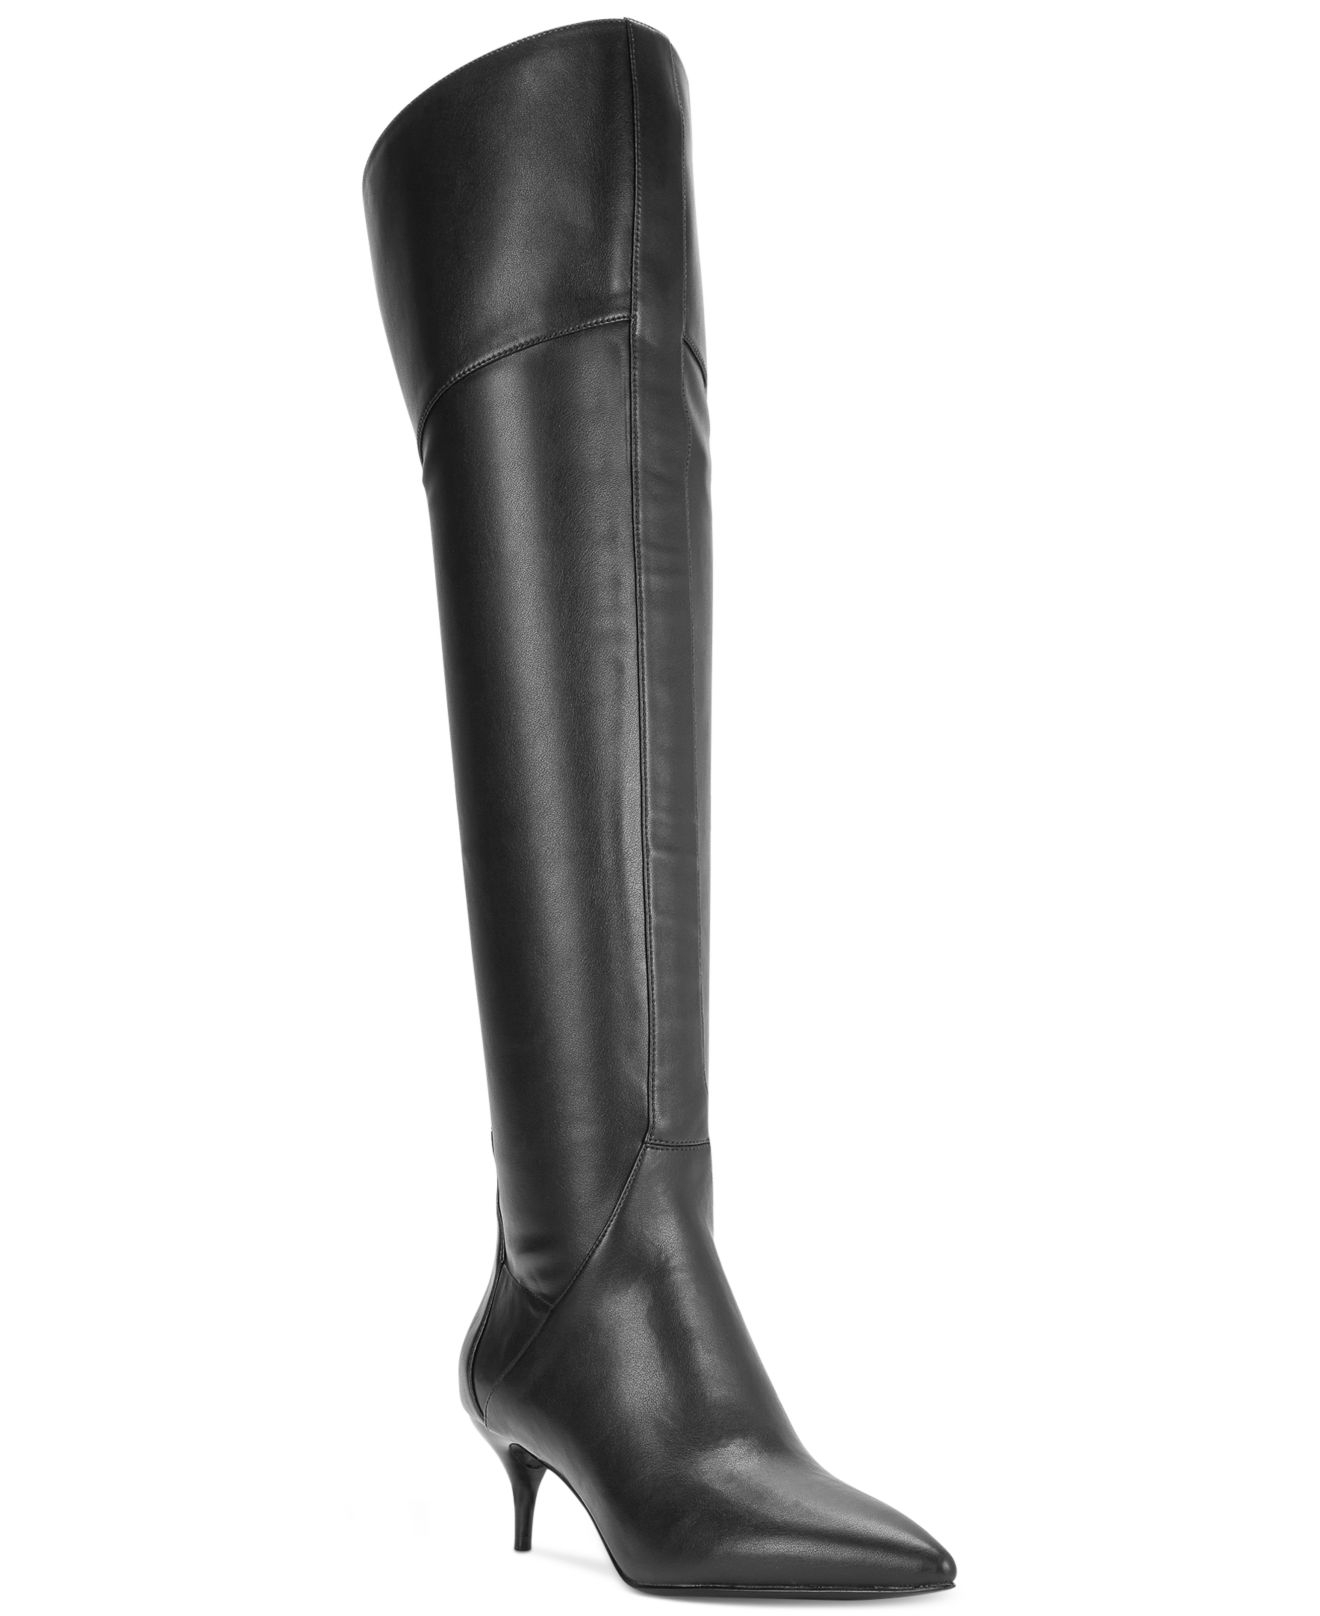 Bodycon dress knee high boots nine west quote stores